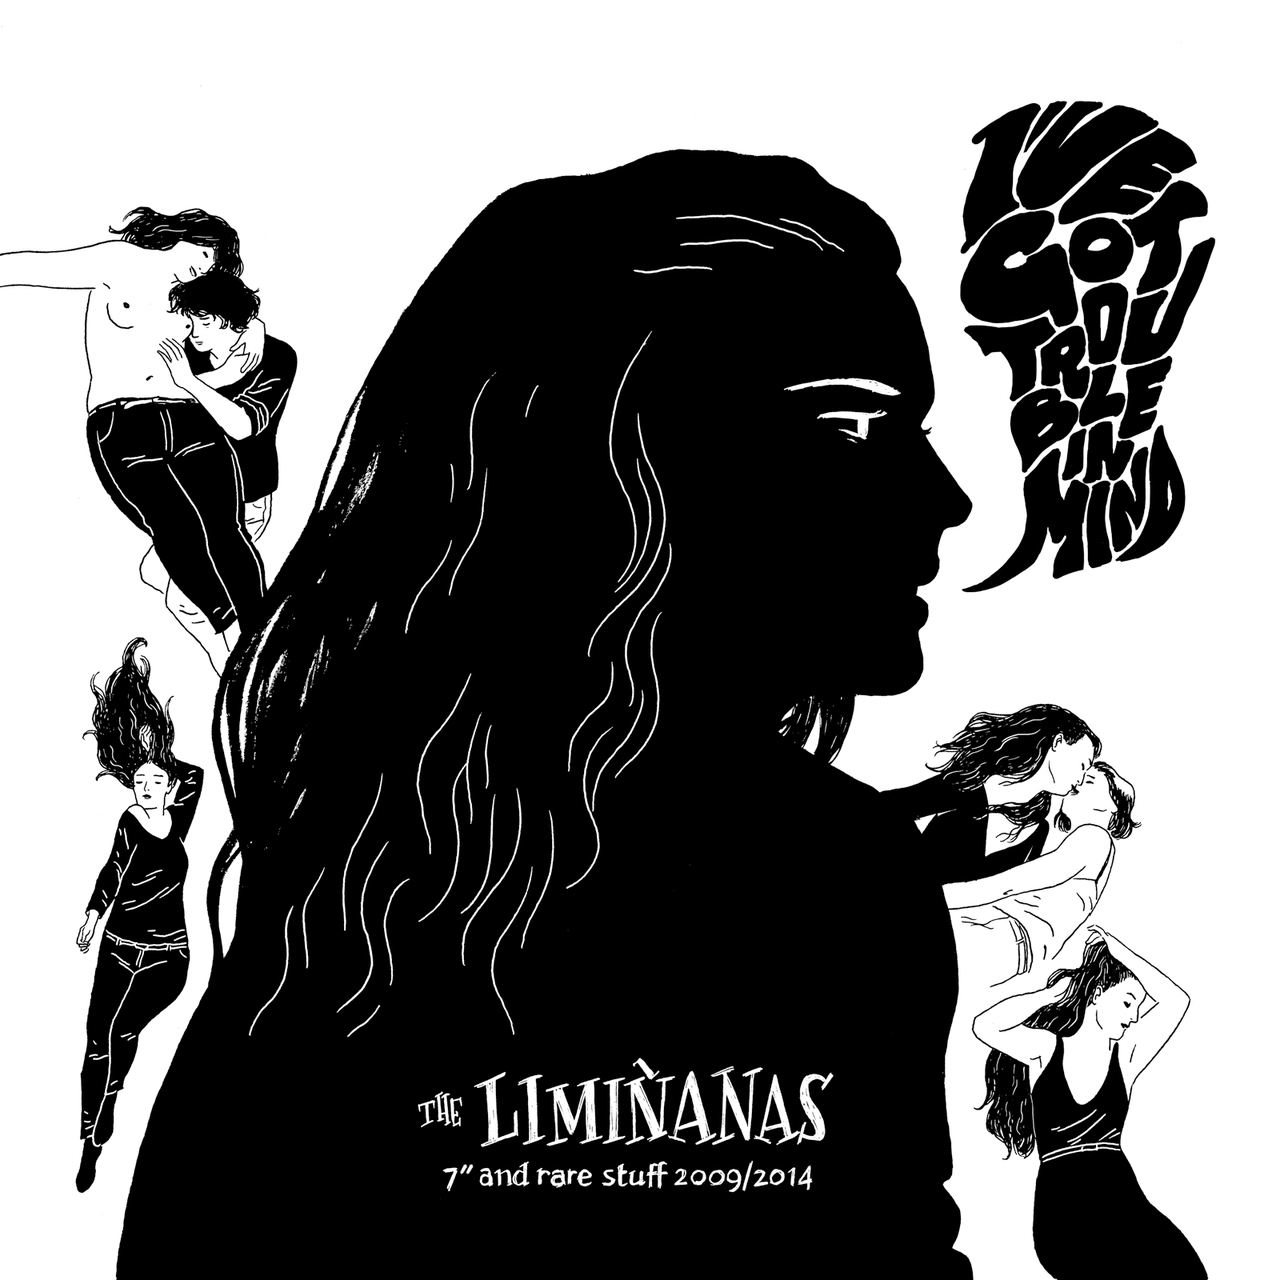 The Liminanas I ve got trouble in mind singles and rare stuff 2009 2014 cd Trouble in Mind records french band music Lionel Marie